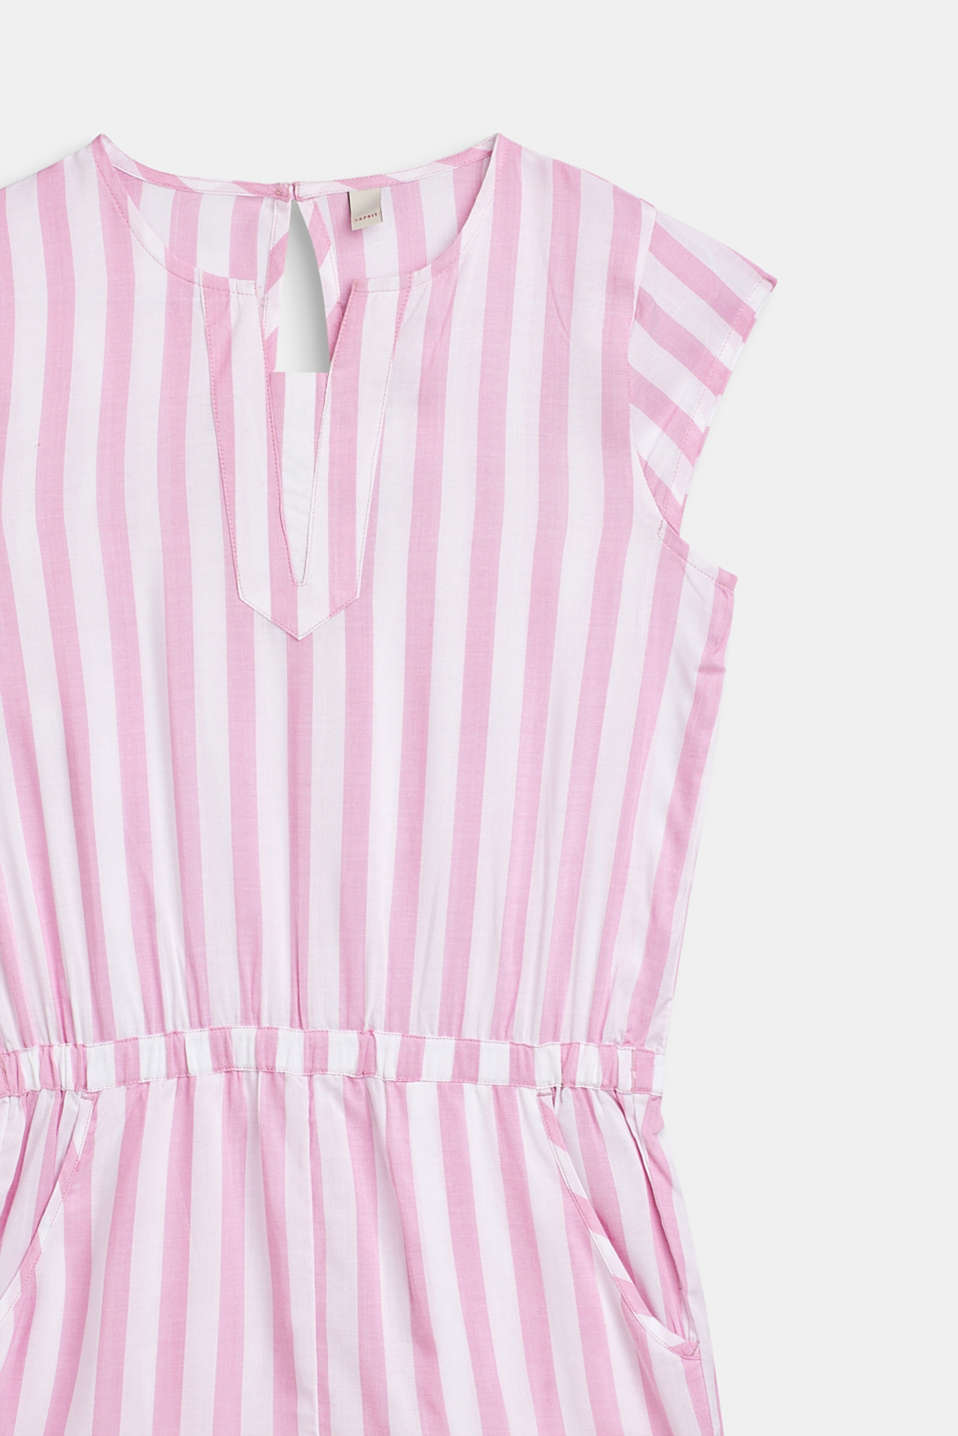 Woven playsuit with stripes, LCCANDY PINK, detail image number 2